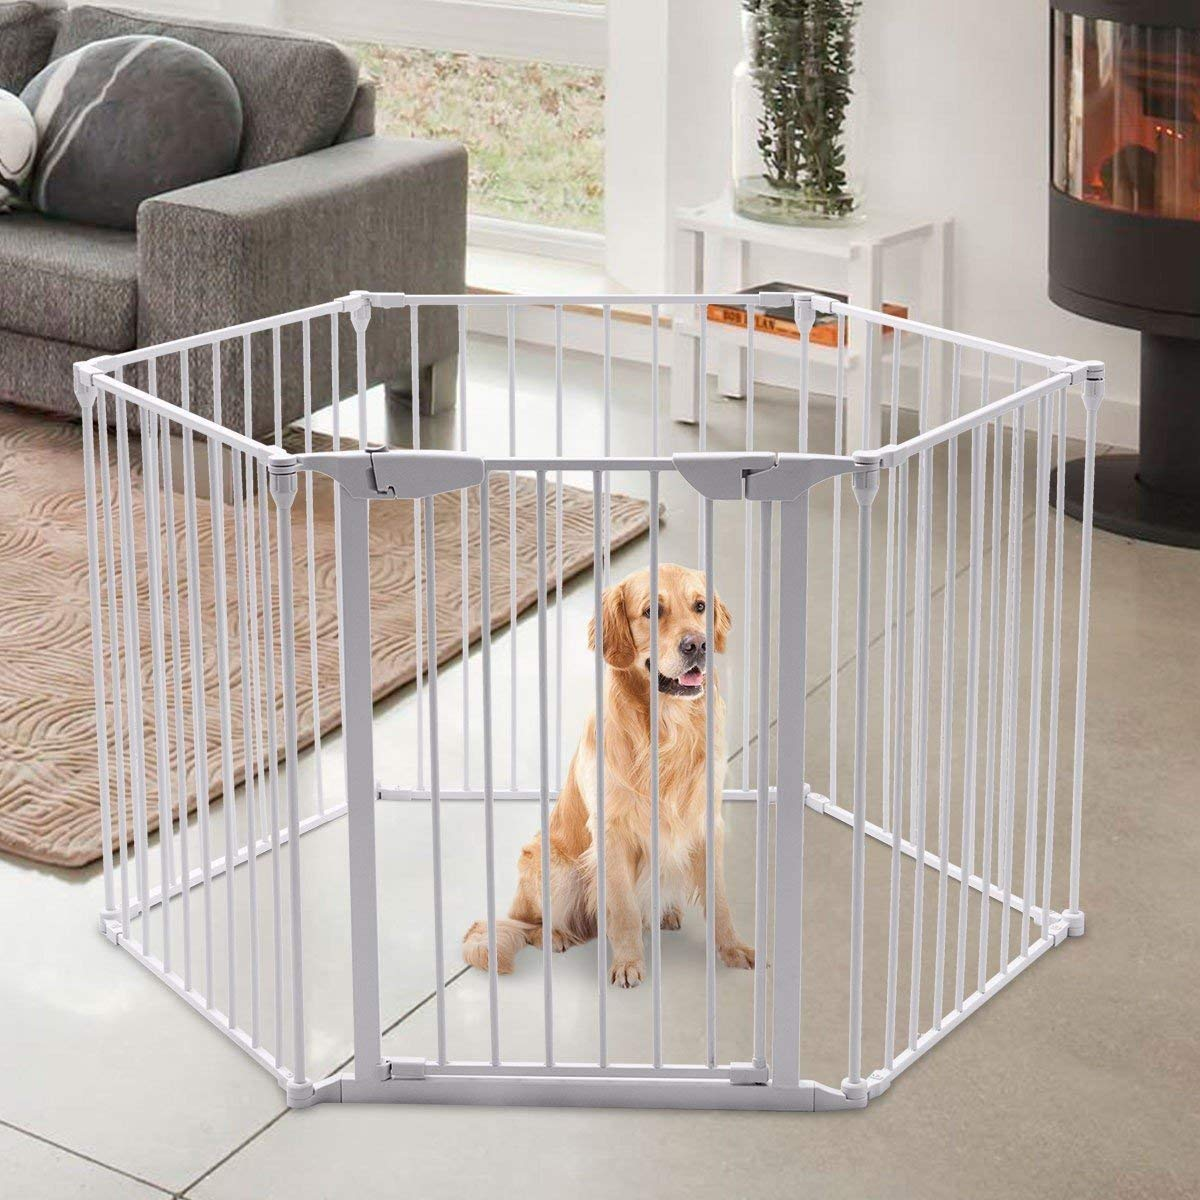 Teekland White Baby Safety Gate/Baby Protect Walls/Fireplace Fence/Dog Gates Indoor/Play Yard with Door,6 Panels Fireplace Extended Metal Fence for Pet/Toddler/Dog/Cat/Christmas Tree by Teekland (Image #3)